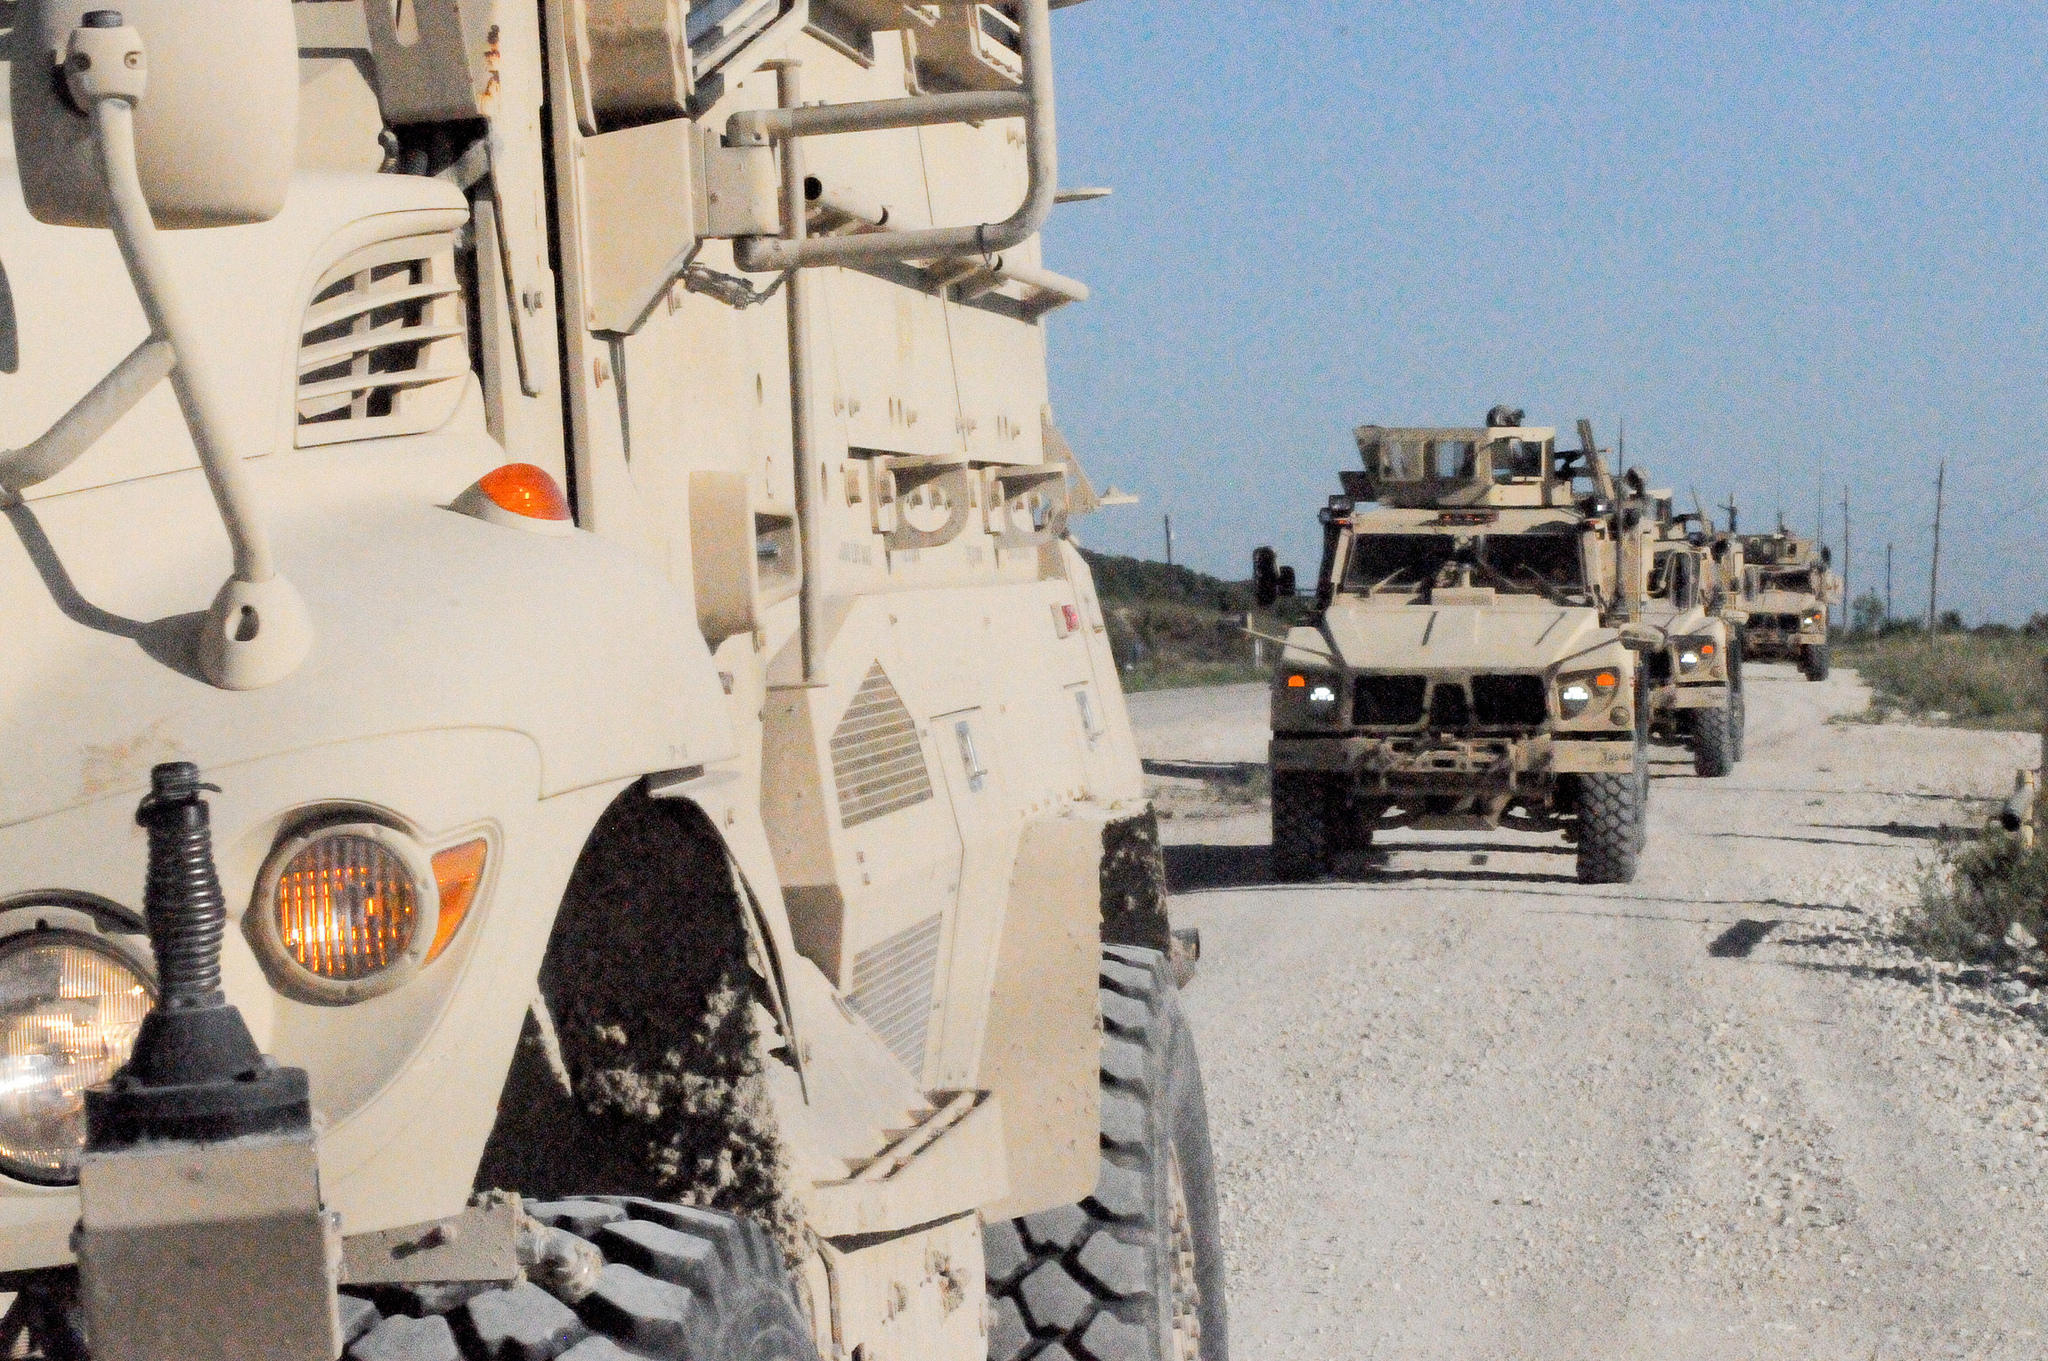 Abbott Orders Texas Guard to 'Monitor' Planned Military Exercises